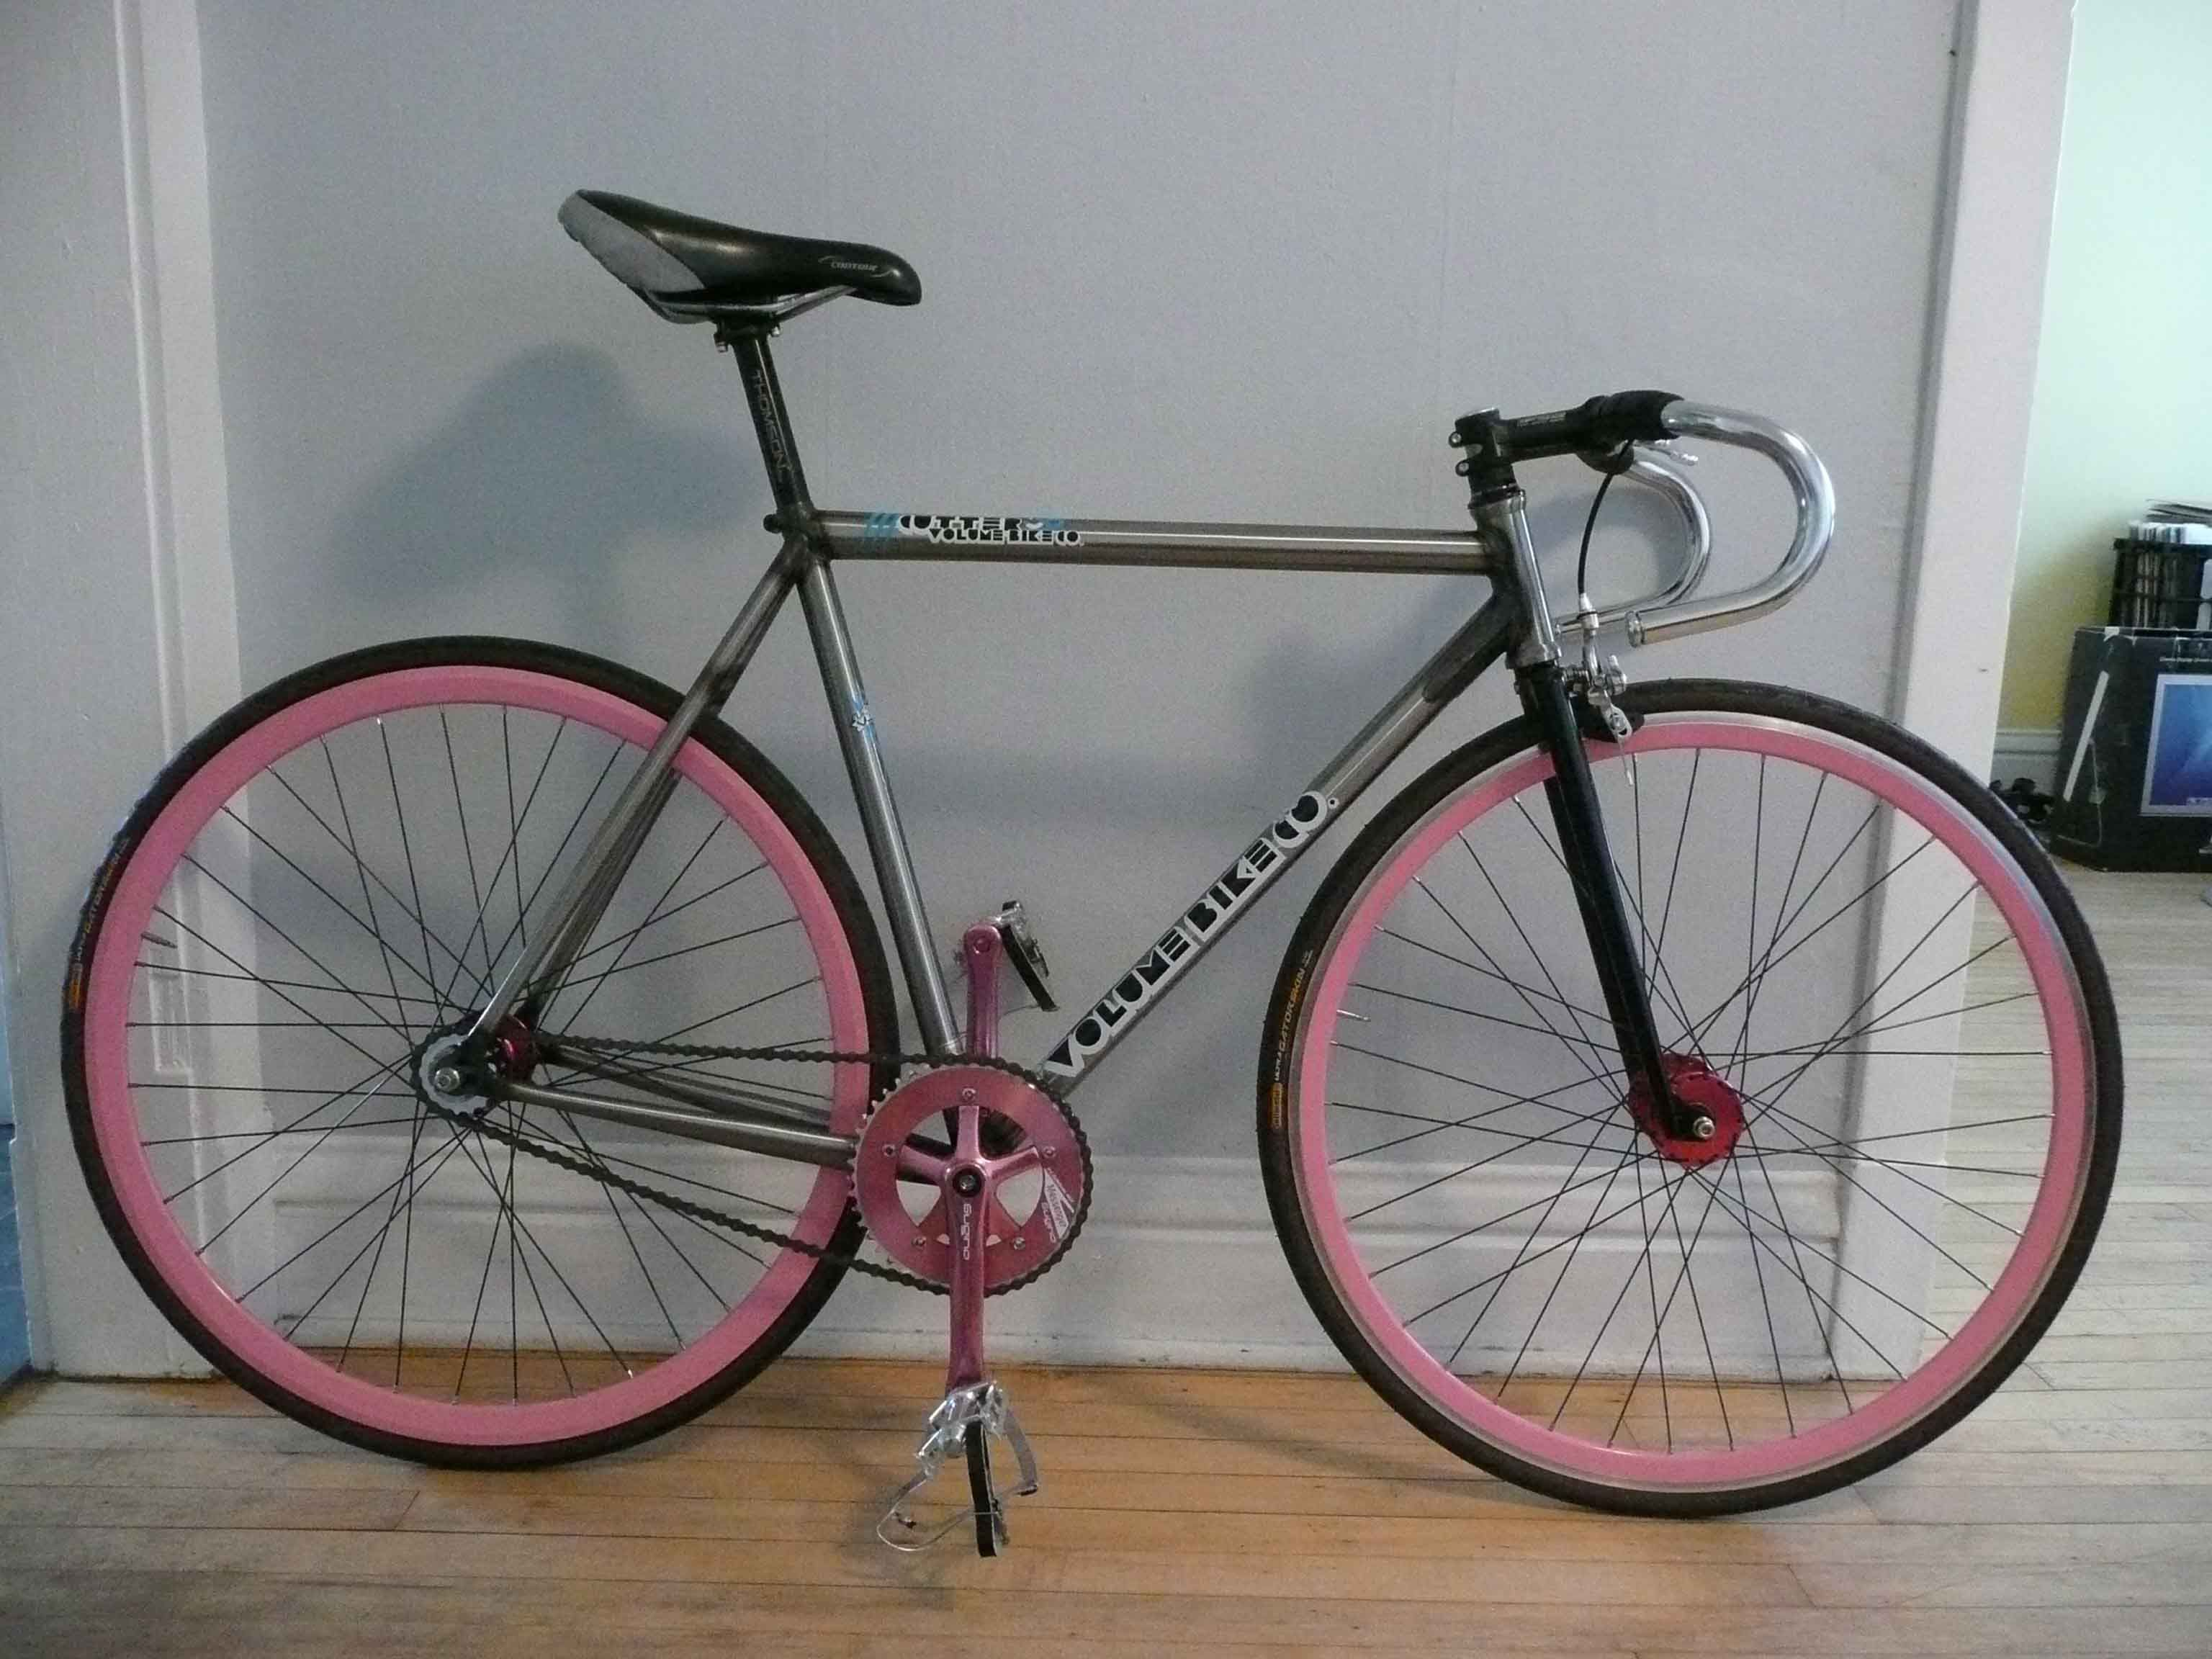 This Is A Fixie, Which Is The Oldest & Simplest